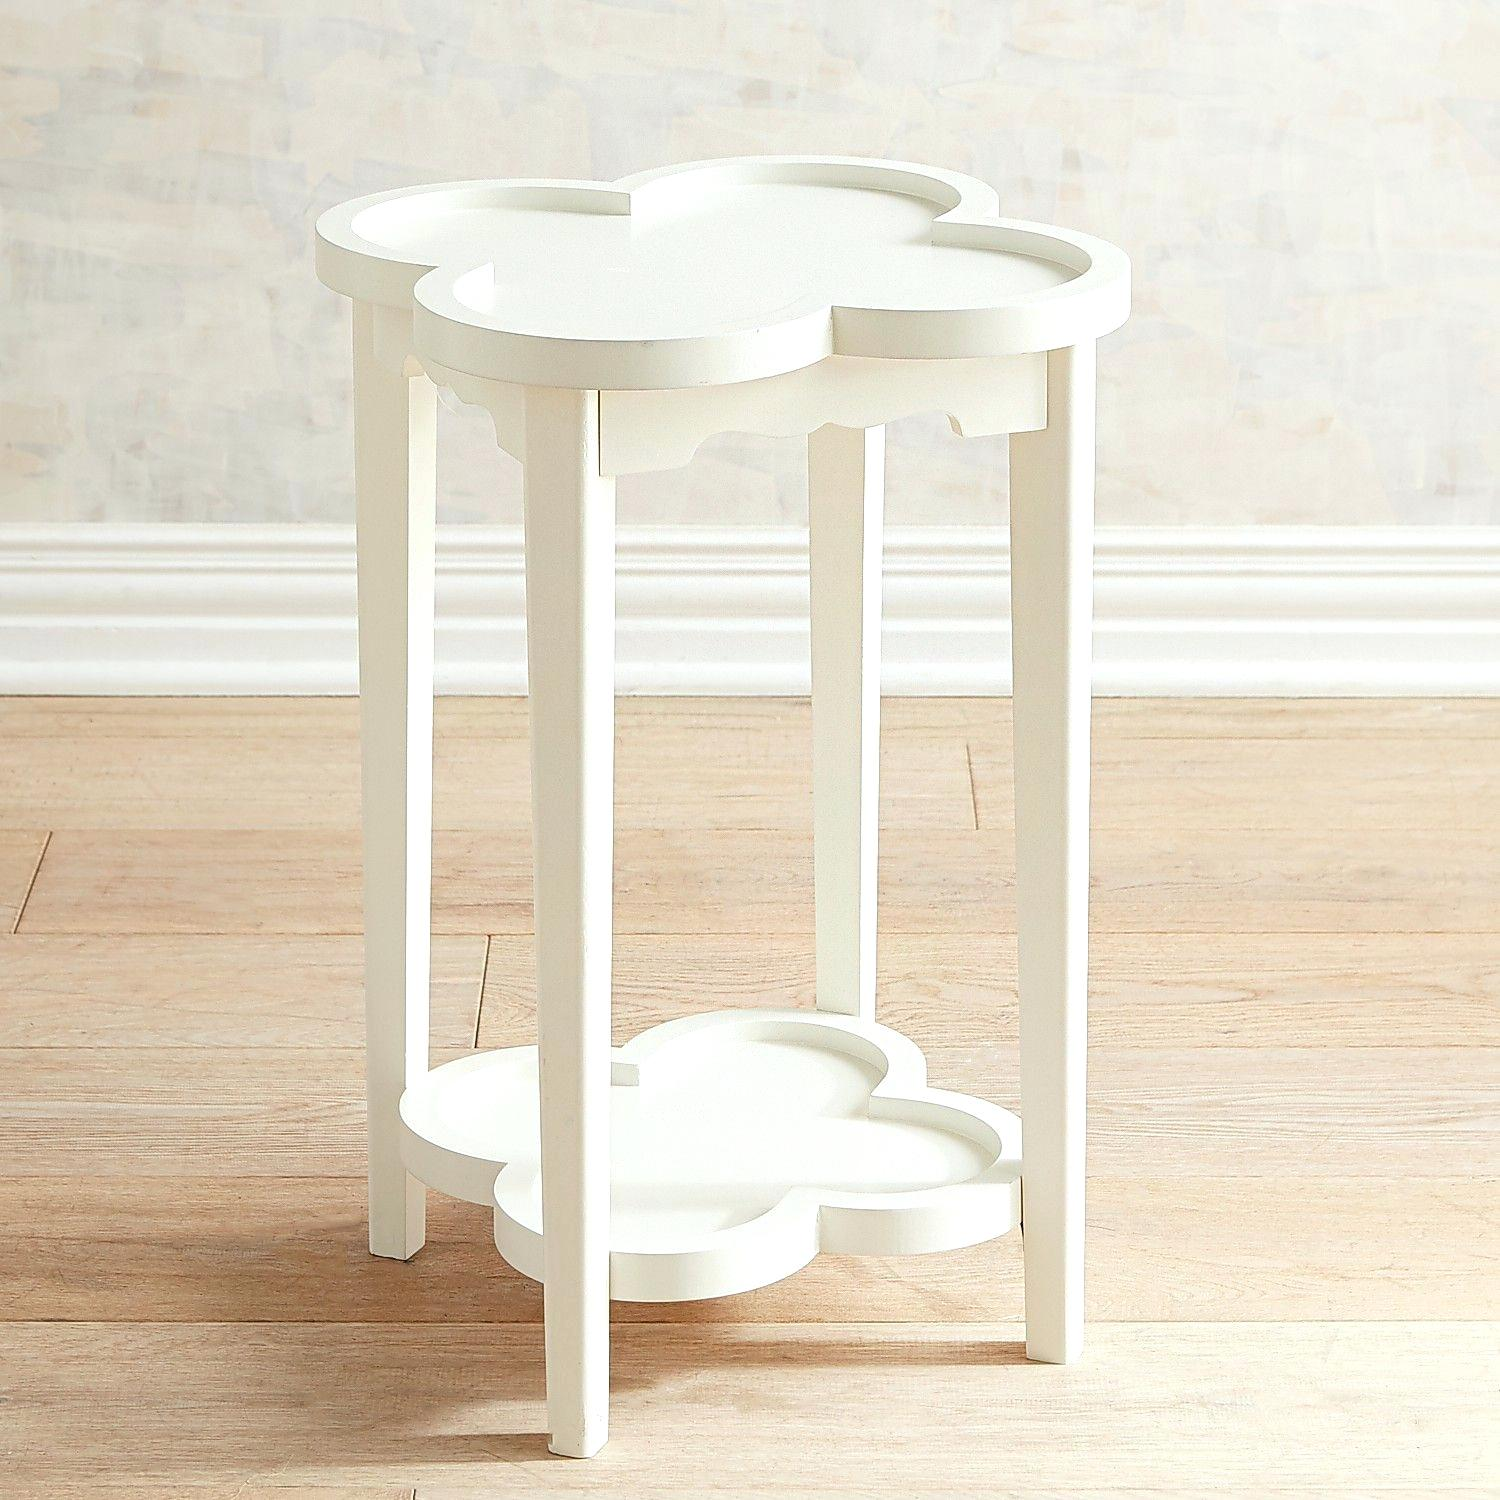 mosaic accent table pier tables kenzie lavorochogan info clover white elba save brown round drawer dishwasher small silver lamps baby scale target dining set for nautical hanging